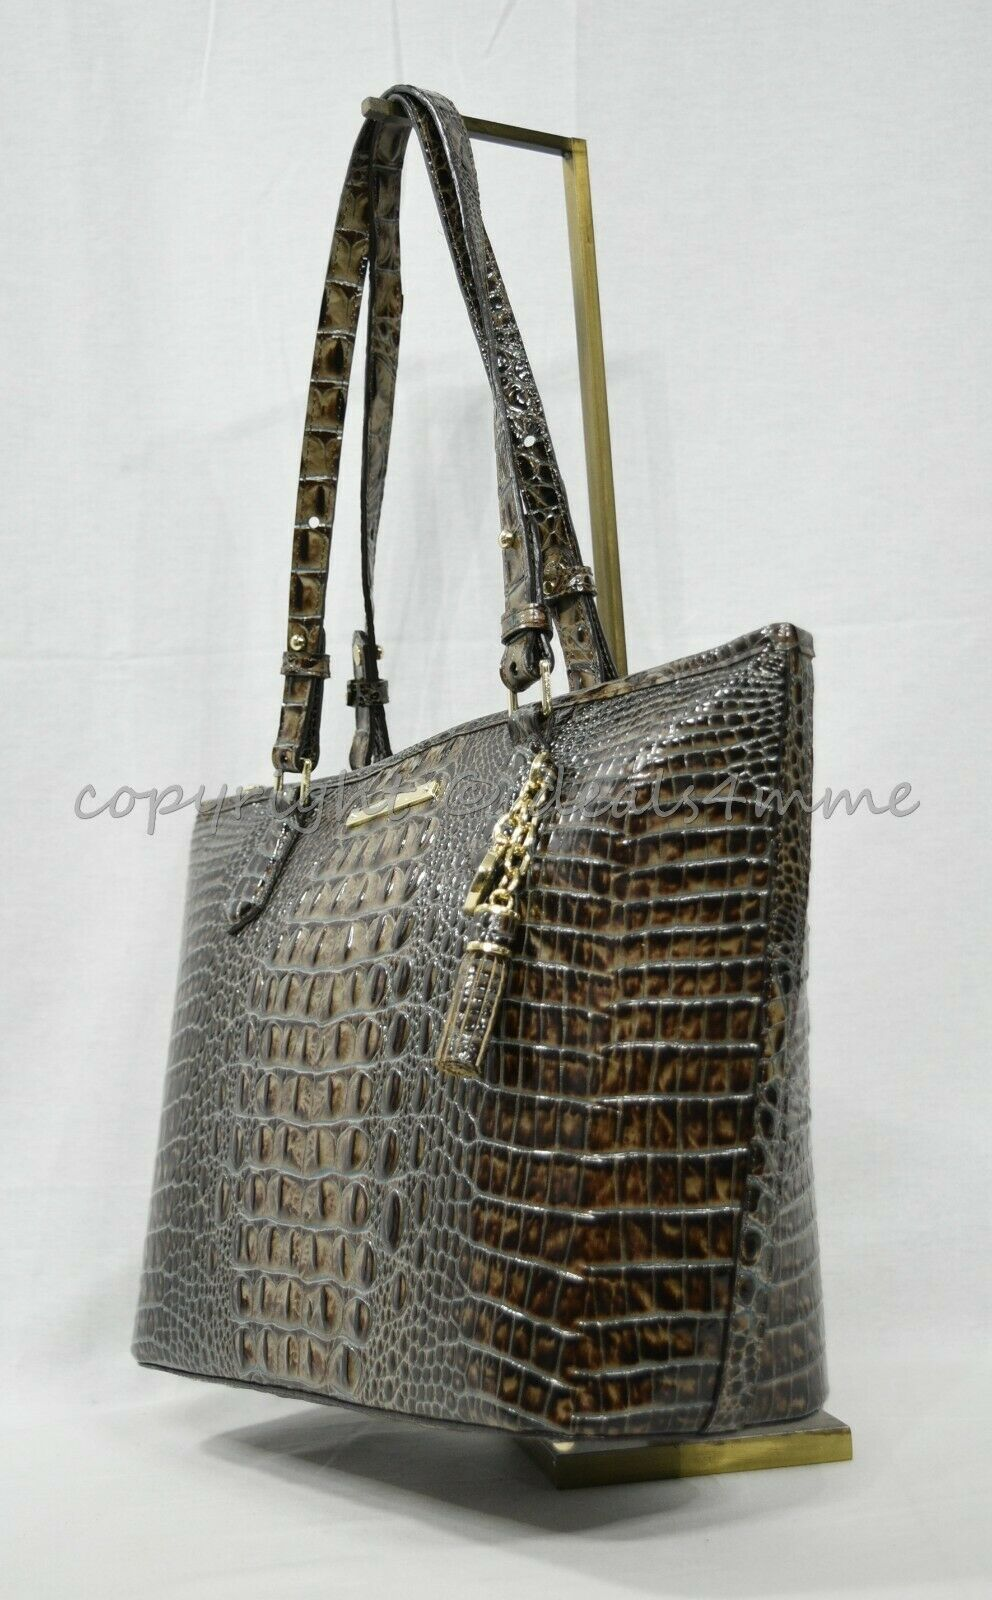 NWT Brahmin Medium Asher Embossed Leather Tote/Shoulder Bag in Chicory Melbourne